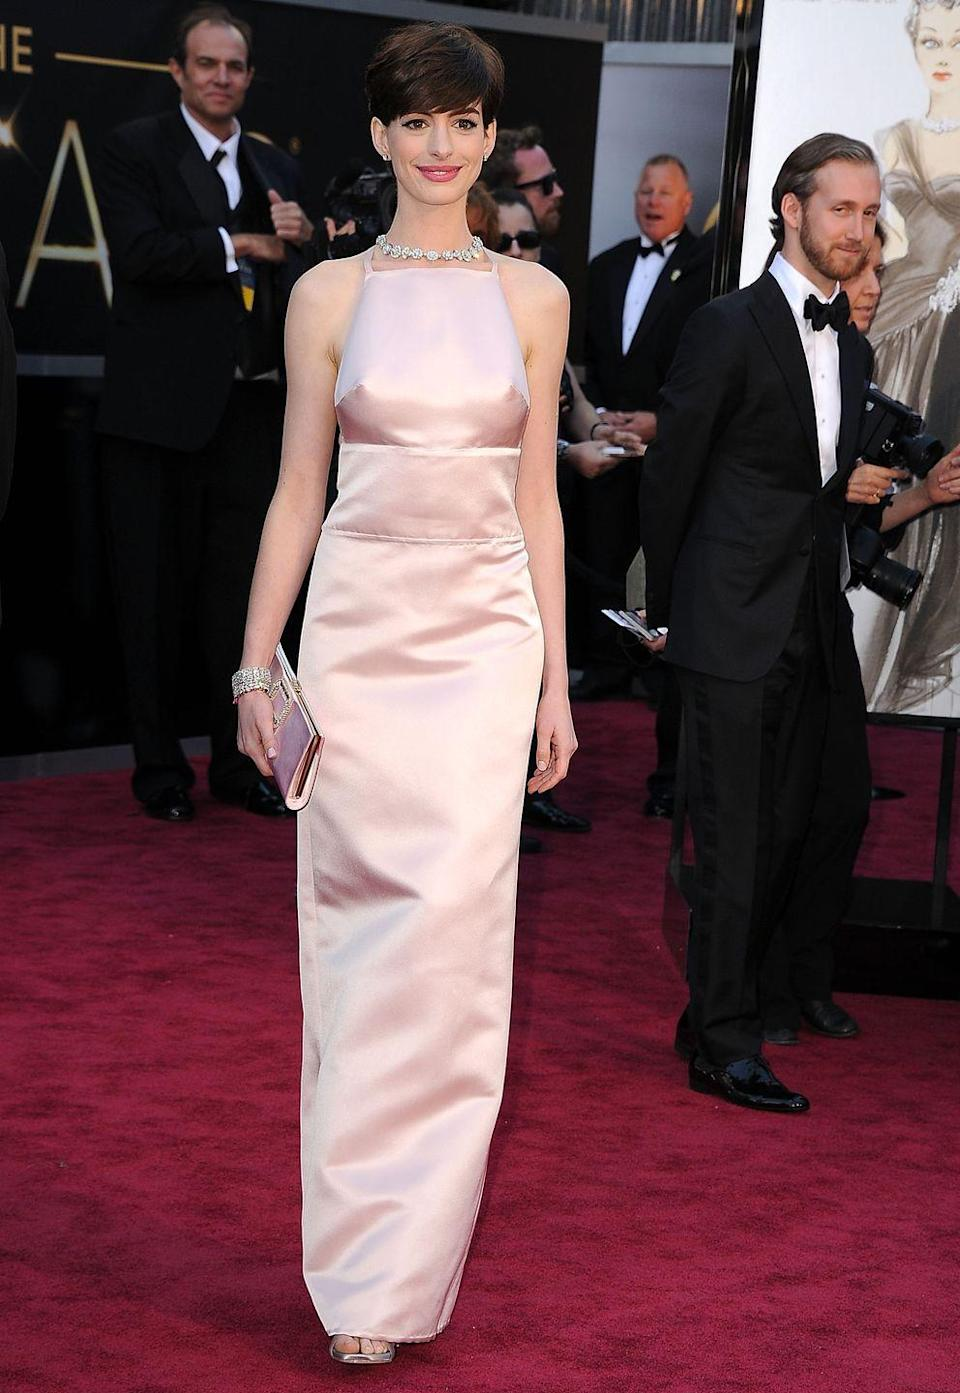 """<p>Critics had a <em>lot </em>to say about this pale pink Prada dress that Anne Hathaway wore to the 2013 Academy Awards. One <a href=""""https://www.hollywood.com/celebrities/anne-hathaway-oscar-dress-worst-dressed-60231127/"""" rel=""""nofollow noopener"""" target=""""_blank"""" data-ylk=""""slk:writer"""" class=""""link rapid-noclick-resp"""">writer</a> called it """"simultaneously bland, confusing, ill-fitting, and vaguely inappropriate."""" Turns out, it <a href=""""https://www.usatoday.com/story/life/entertainthis/2014/10/09/anne-hathaway-finally-explains-that-pink-oscar-dress/77324896/"""" rel=""""nofollow noopener"""" target=""""_blank"""" data-ylk=""""slk:wasn't Anne's first choice either"""" class=""""link rapid-noclick-resp"""">wasn't Anne's first choice either</a>. She had another dress picked out, but found out shortly before the Oscars that her <em>Les Misérables </em>costar Amanda Seyfried was going to wear something almost identical. So she wore this instead, to the horror of fashion bloggers everywhere. </p>"""